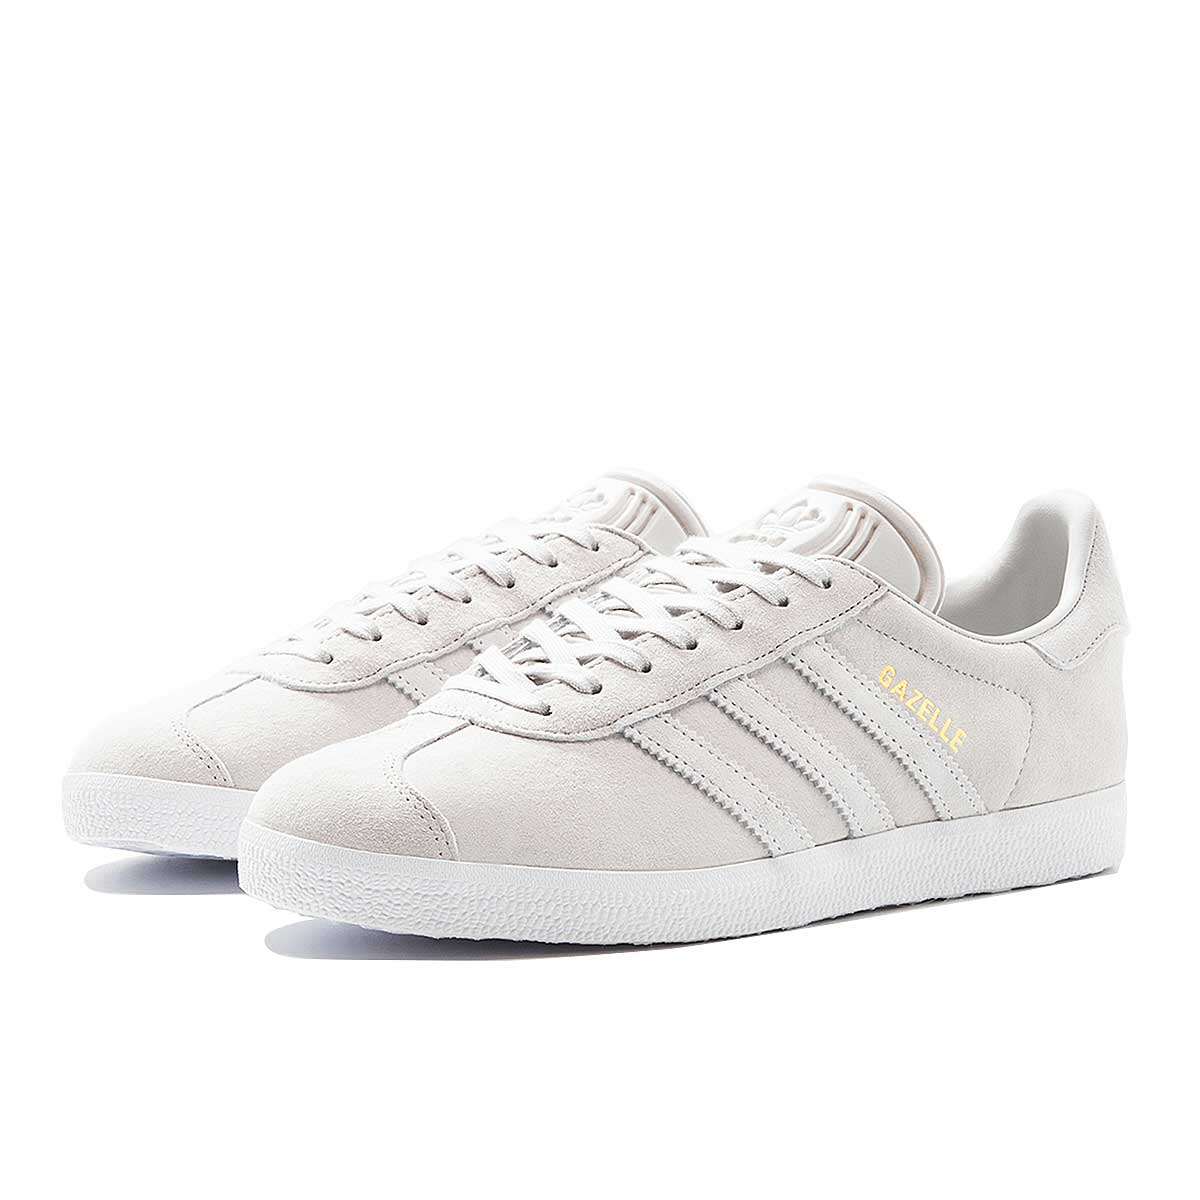 adidas gazelle mens grey